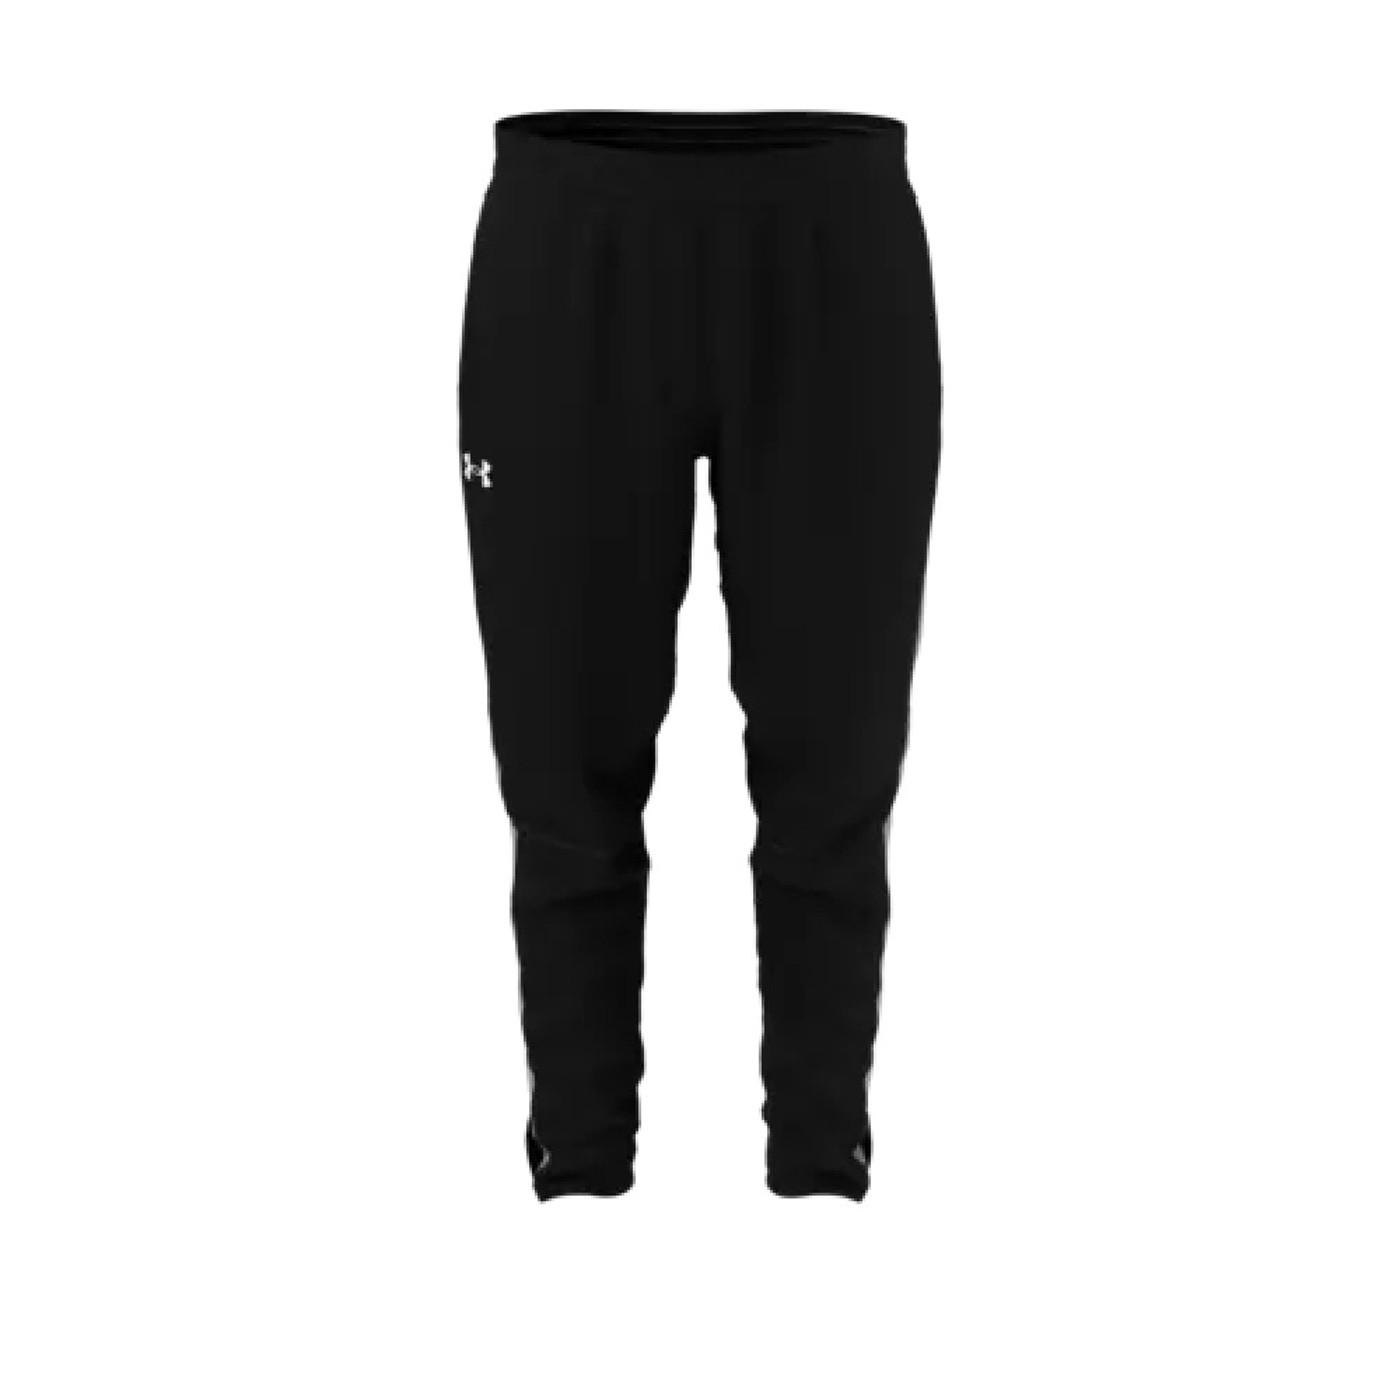 UNDER ARMOUR SPORTSTYLE PIQUE TRACK PANT - Herren